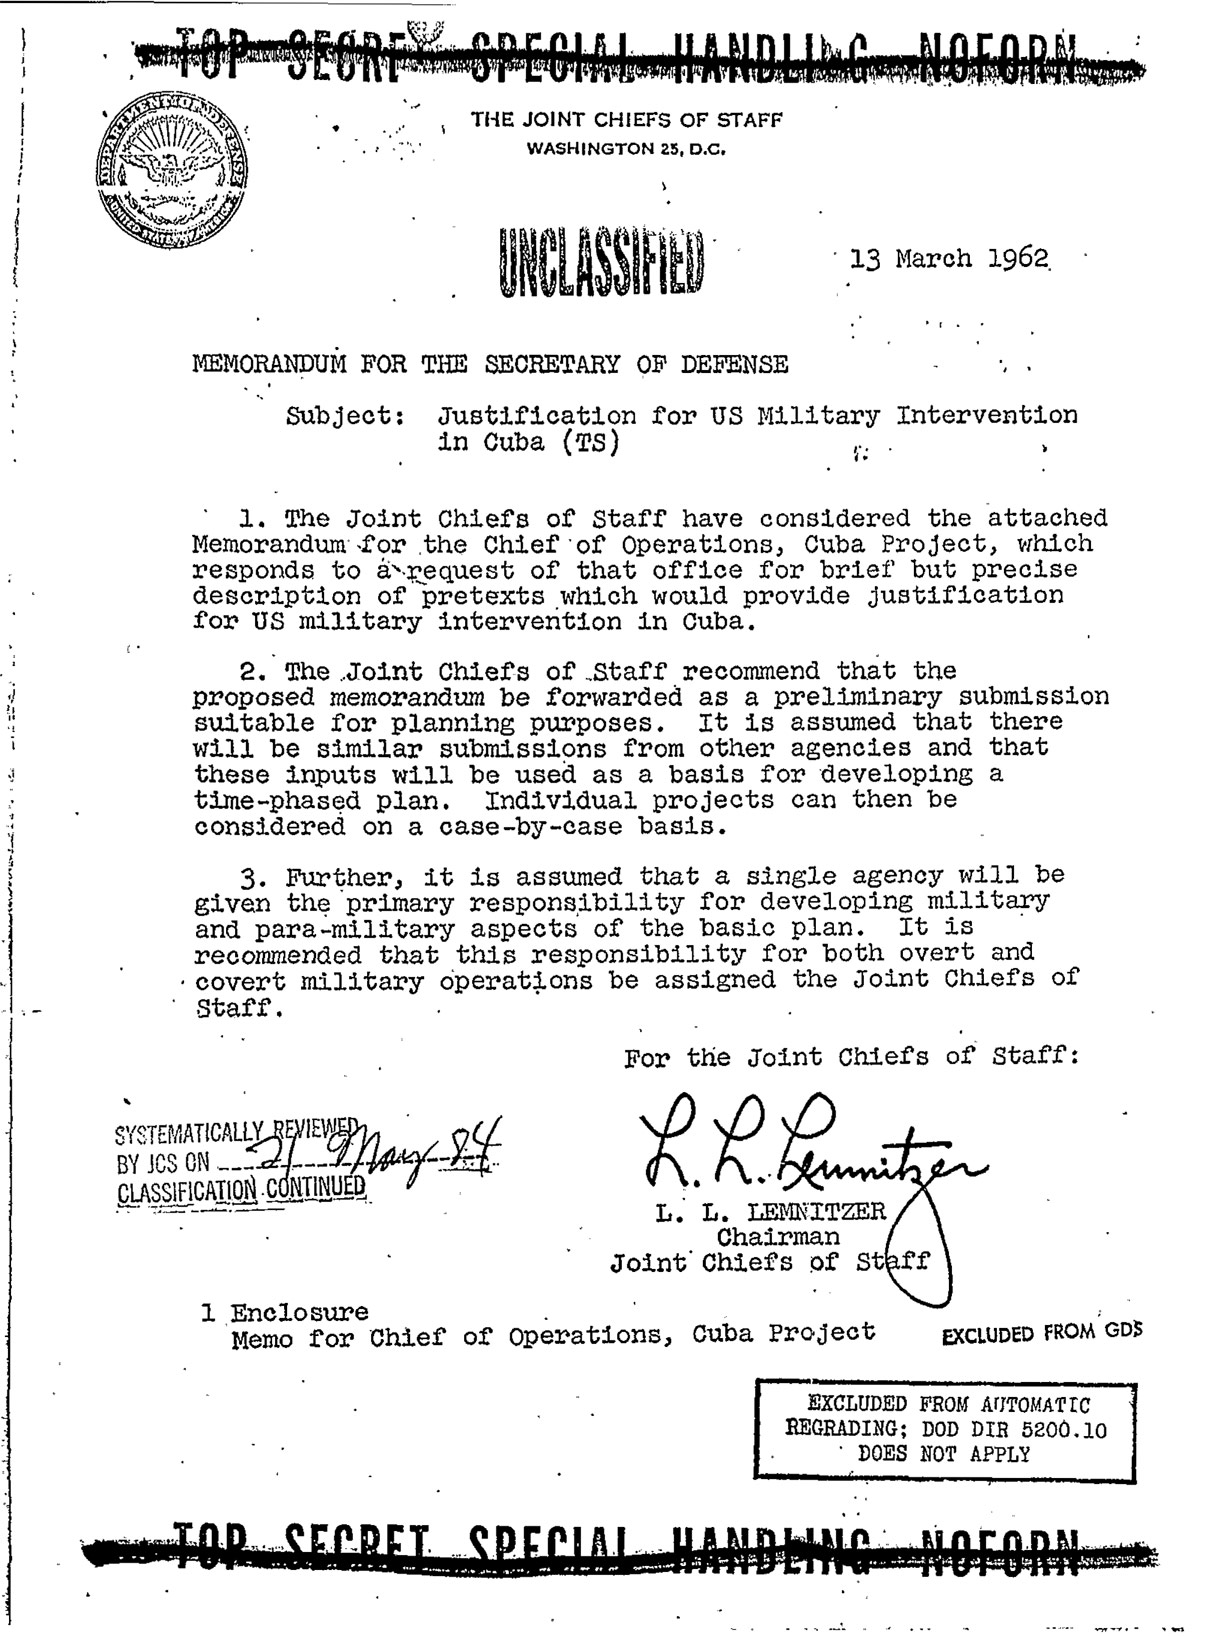 Operation Northwoods Image Two